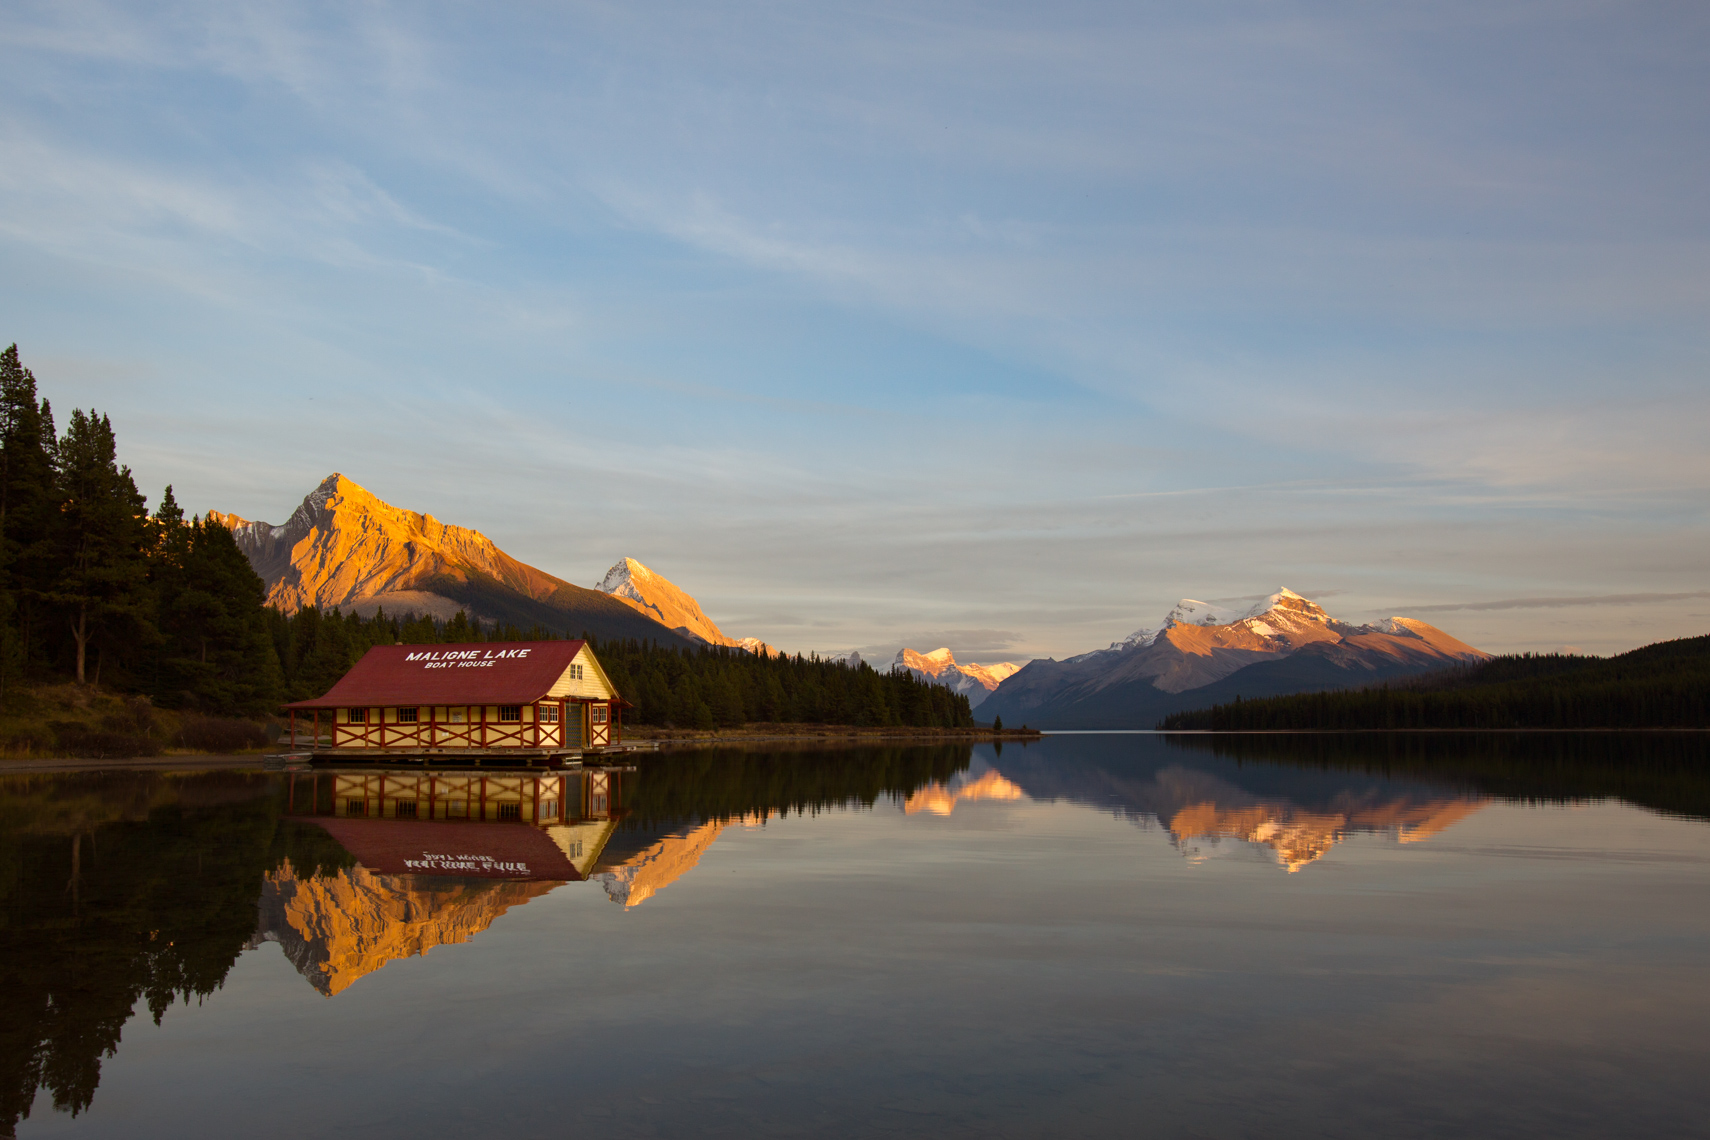 01-Travel-Maligne-Lake-Boathouse